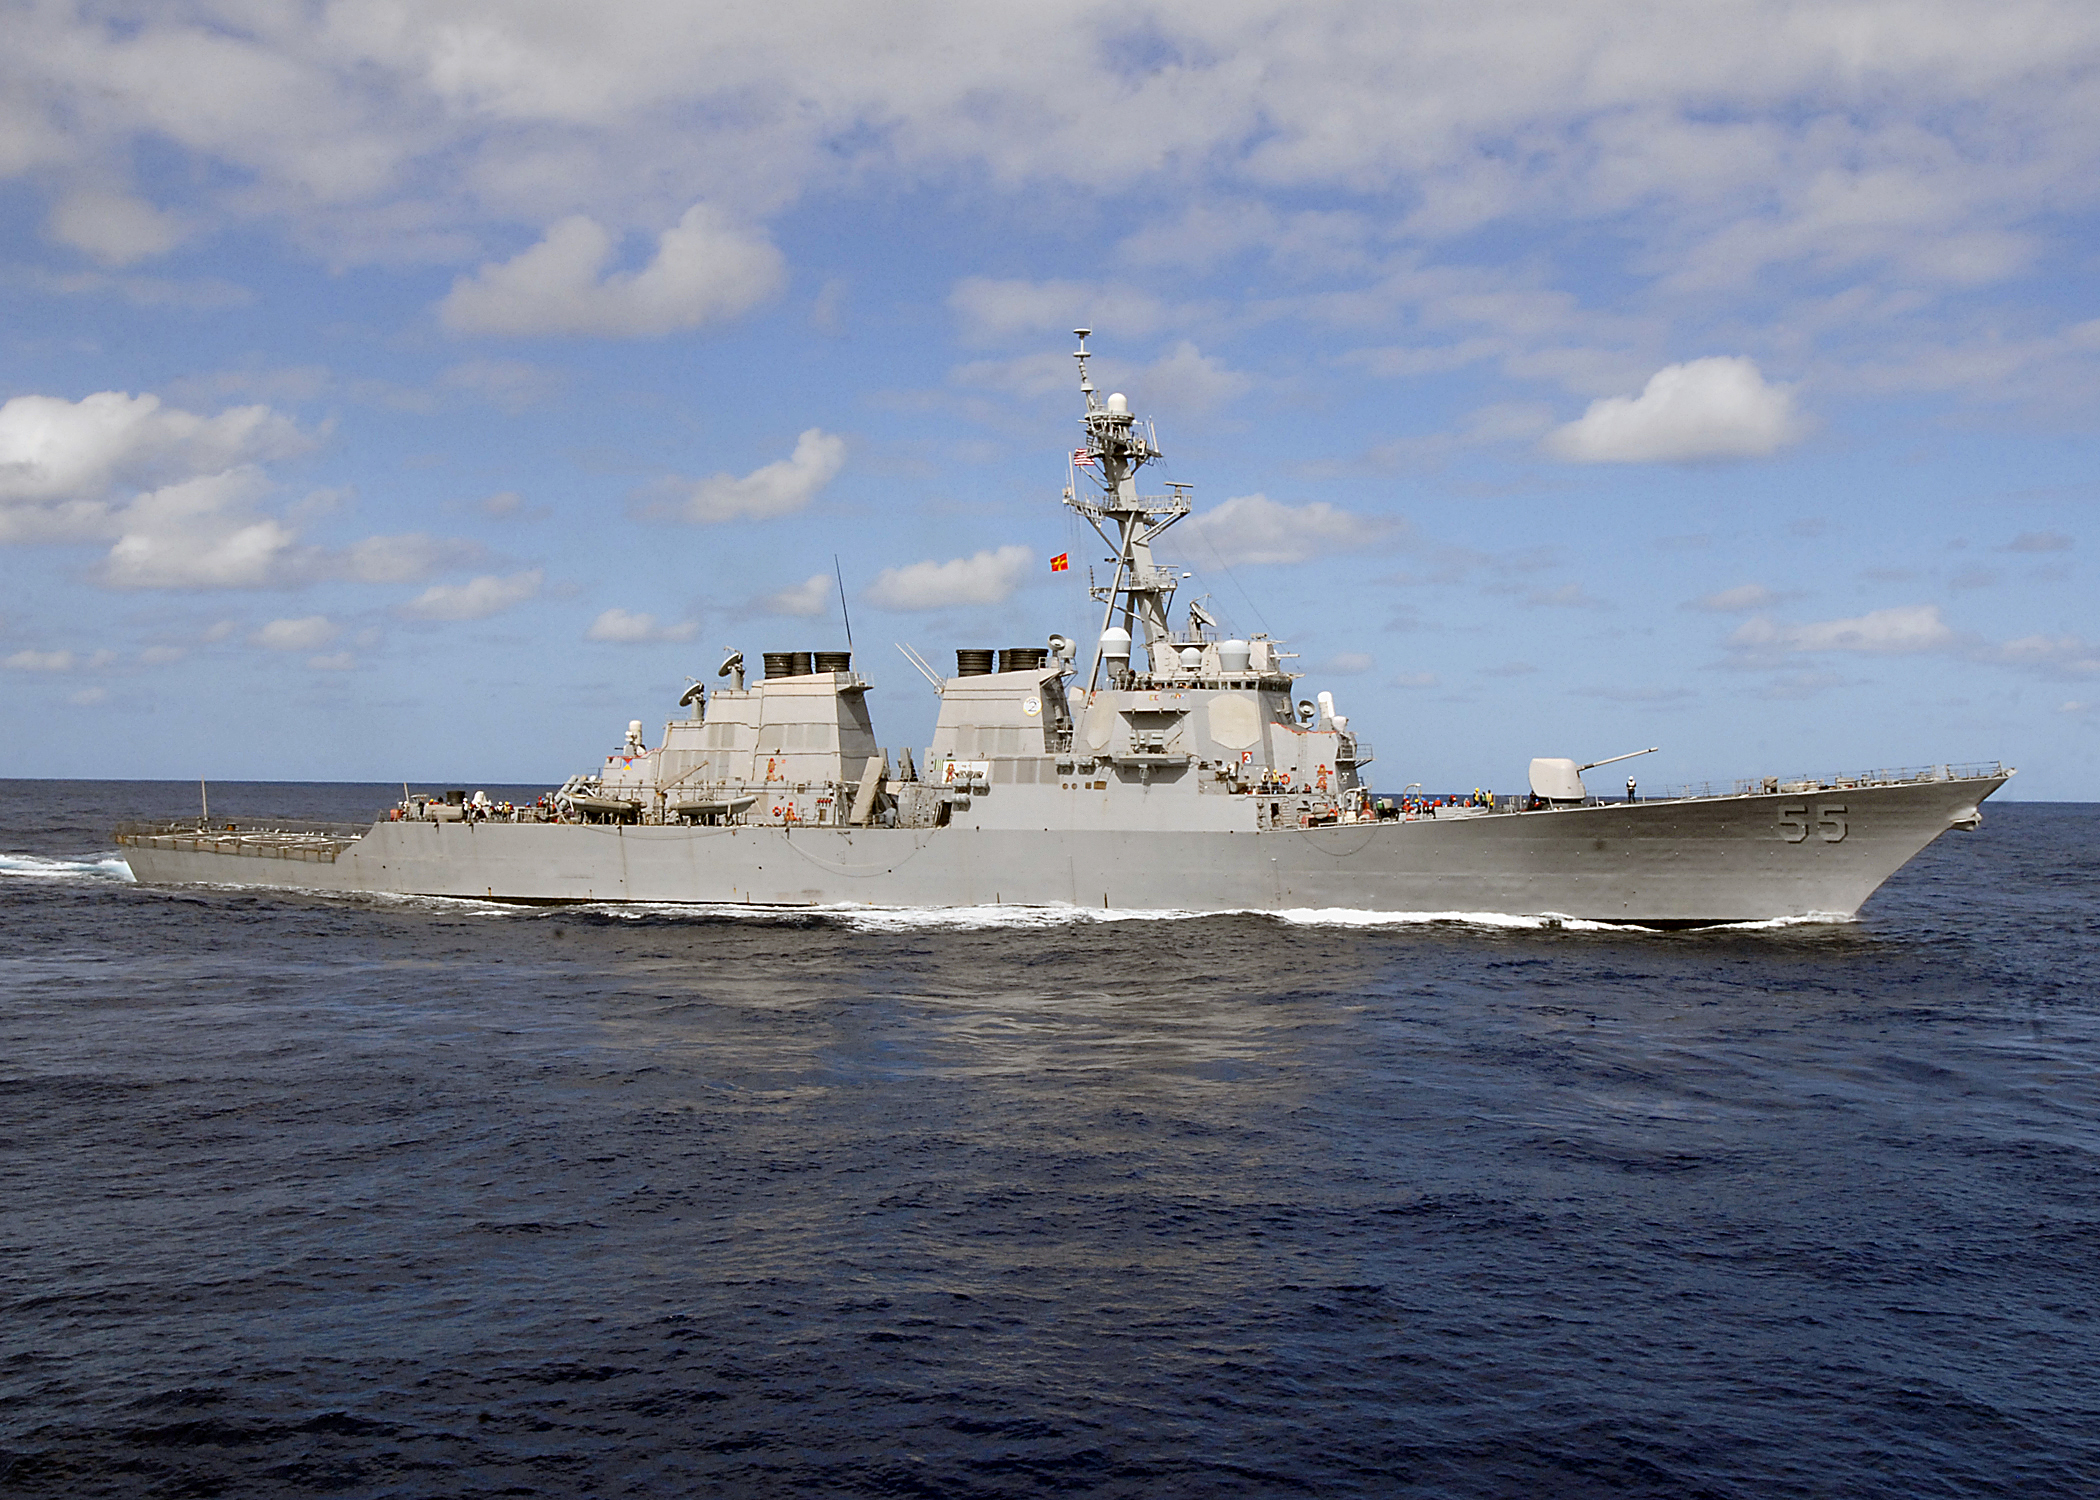 USS Stout breaks Navy record for longest stint at sea, 208 days